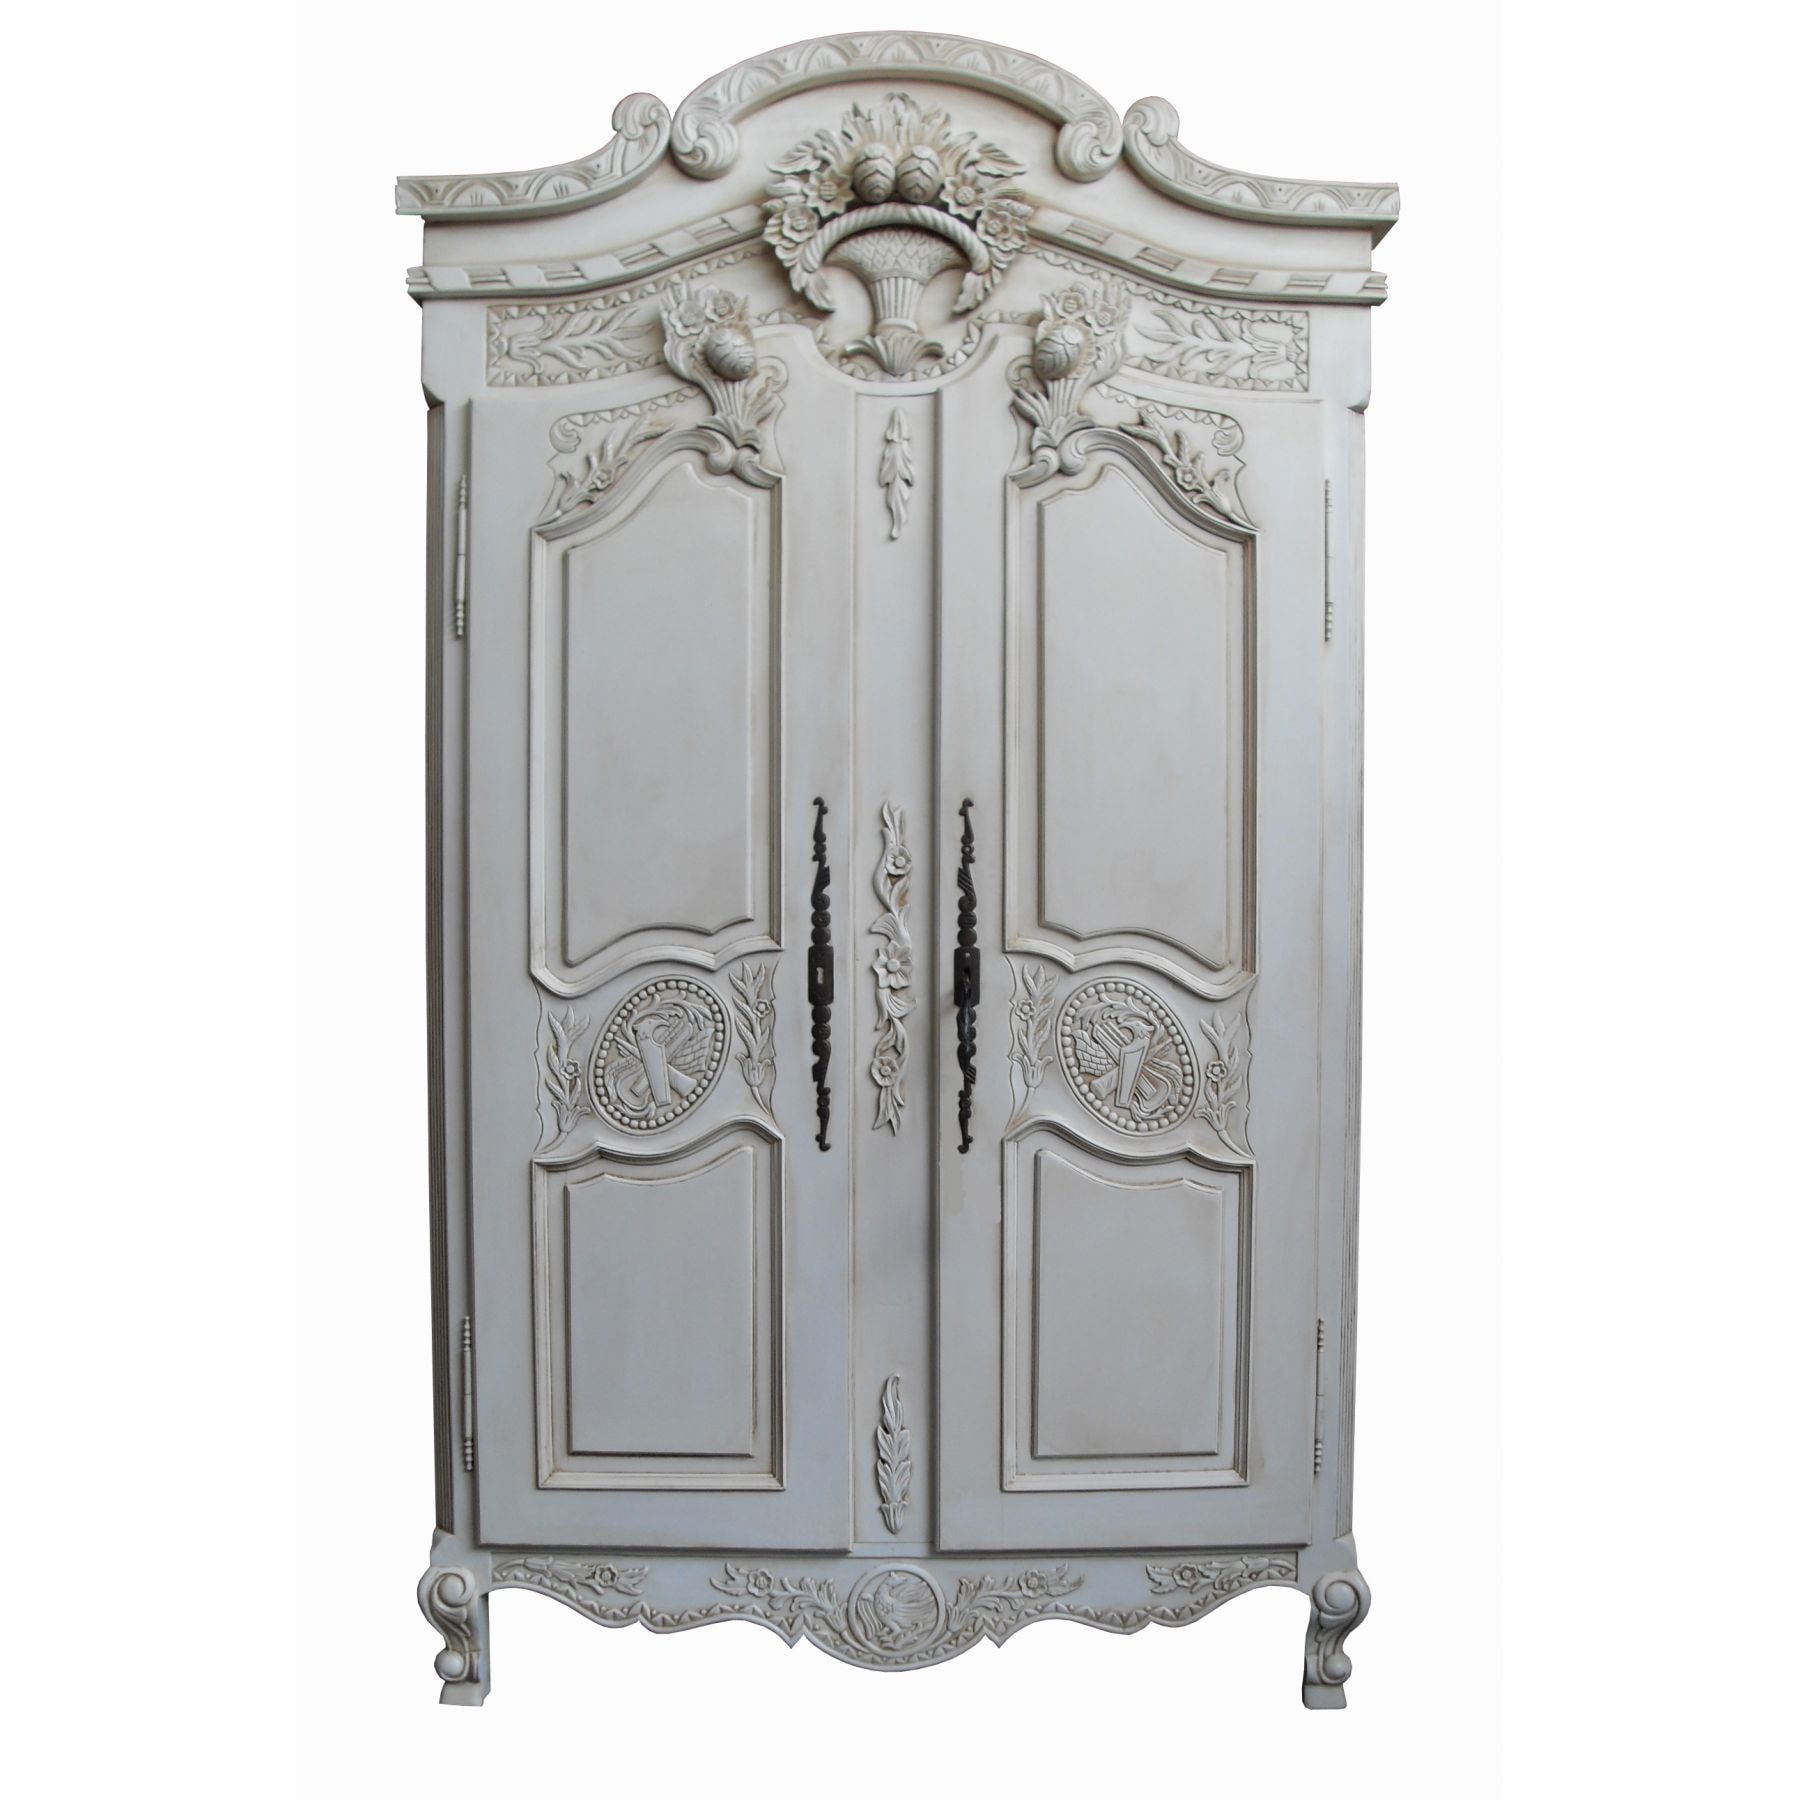 Bedroom Armoire Ikea French Bedroom Chairs Bedroom Room Interior Design Bedroom Armoires: Rococo Antique French Wardrobe